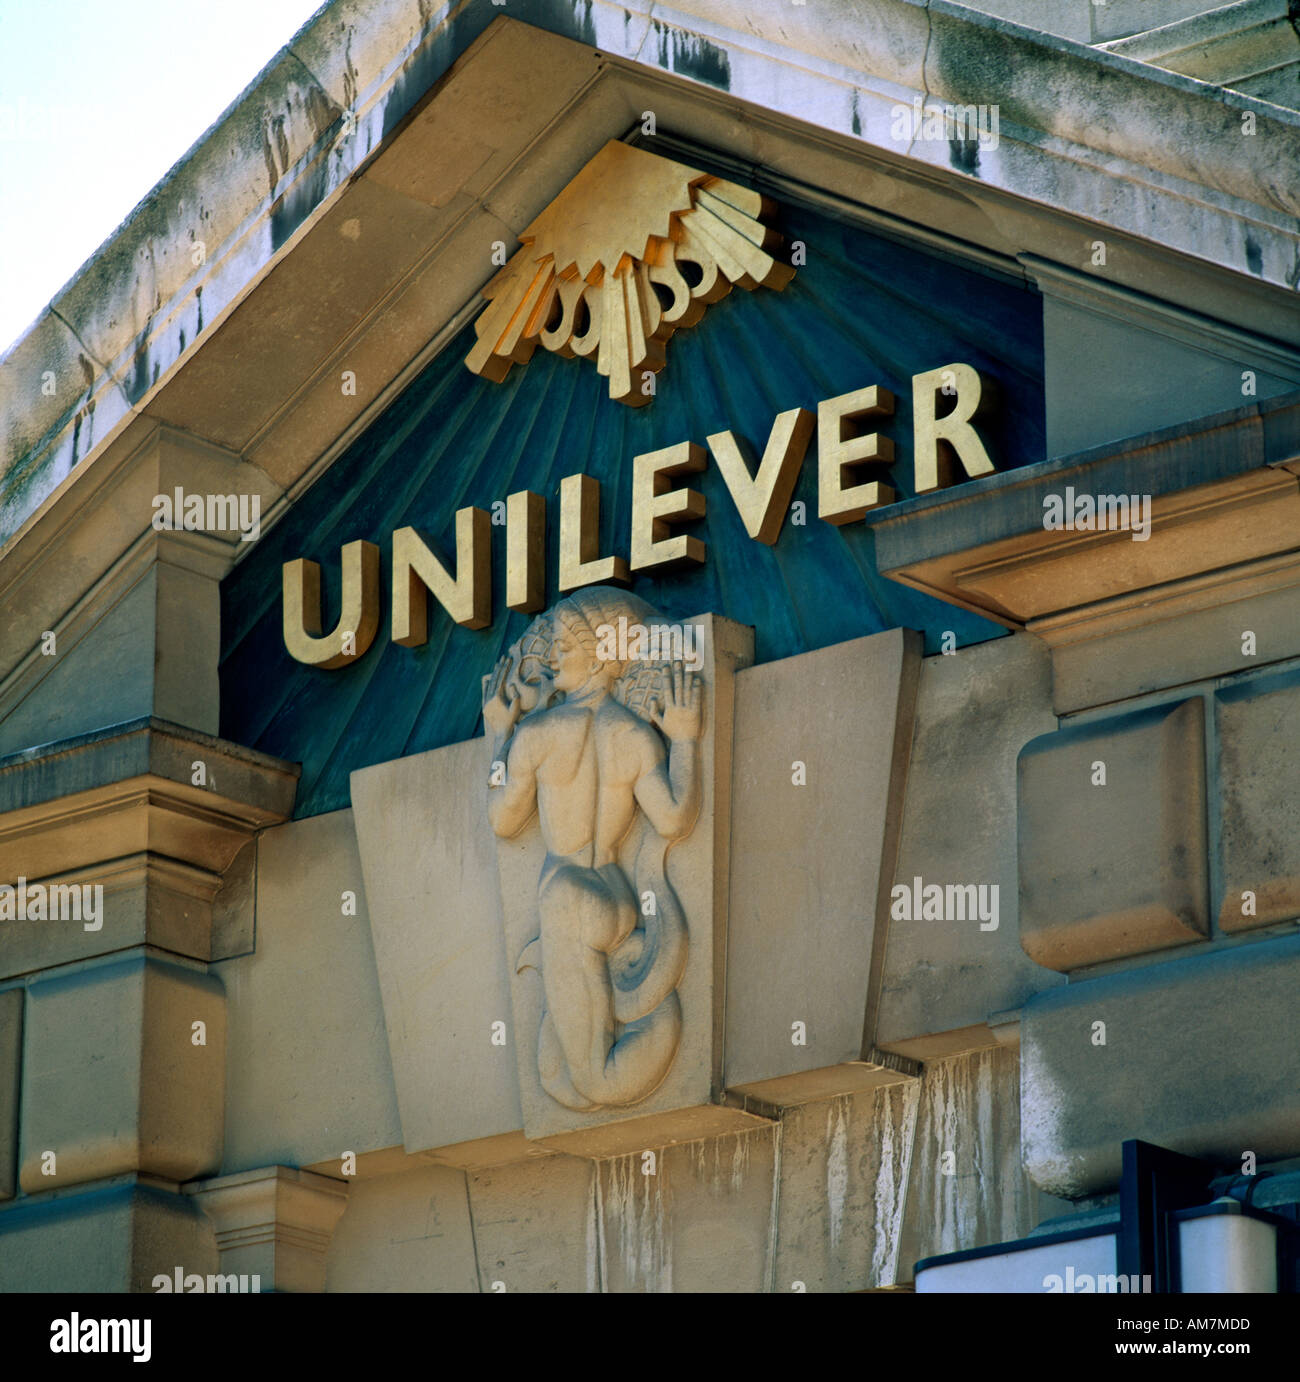 Sculpture on headquarters offices of Unilever with logo by River Thames River Thames City of London EC4 England  - Stock Image